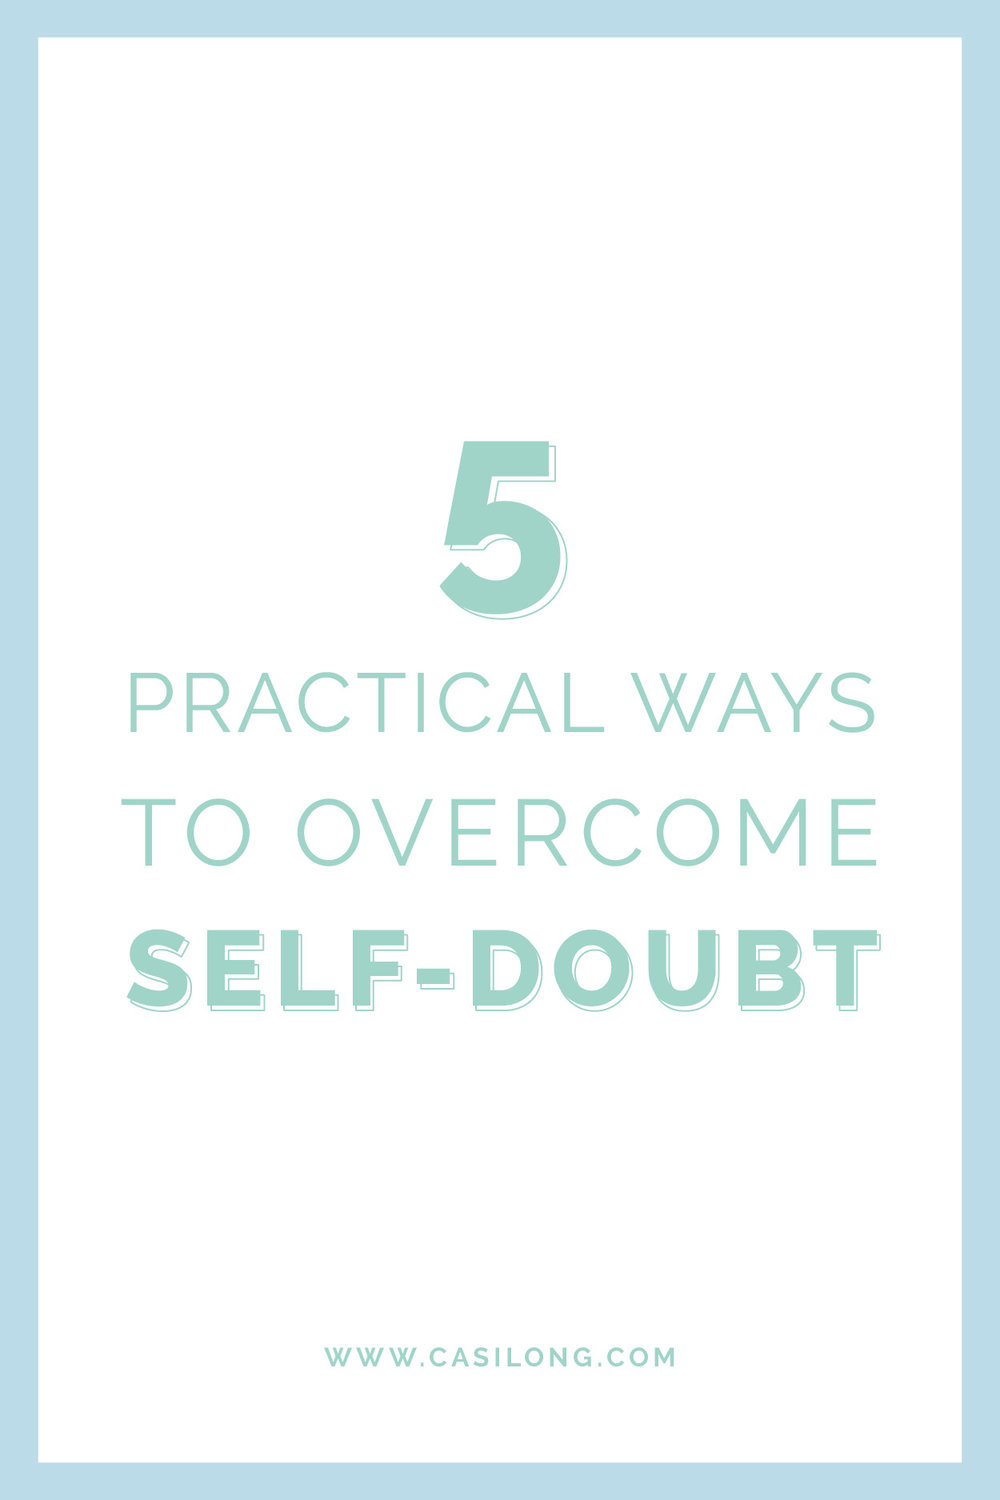 Five Practical Ways to Overcome Self-Doubt | casilong.com/blog | #casilongdesign #fearlesspursuit